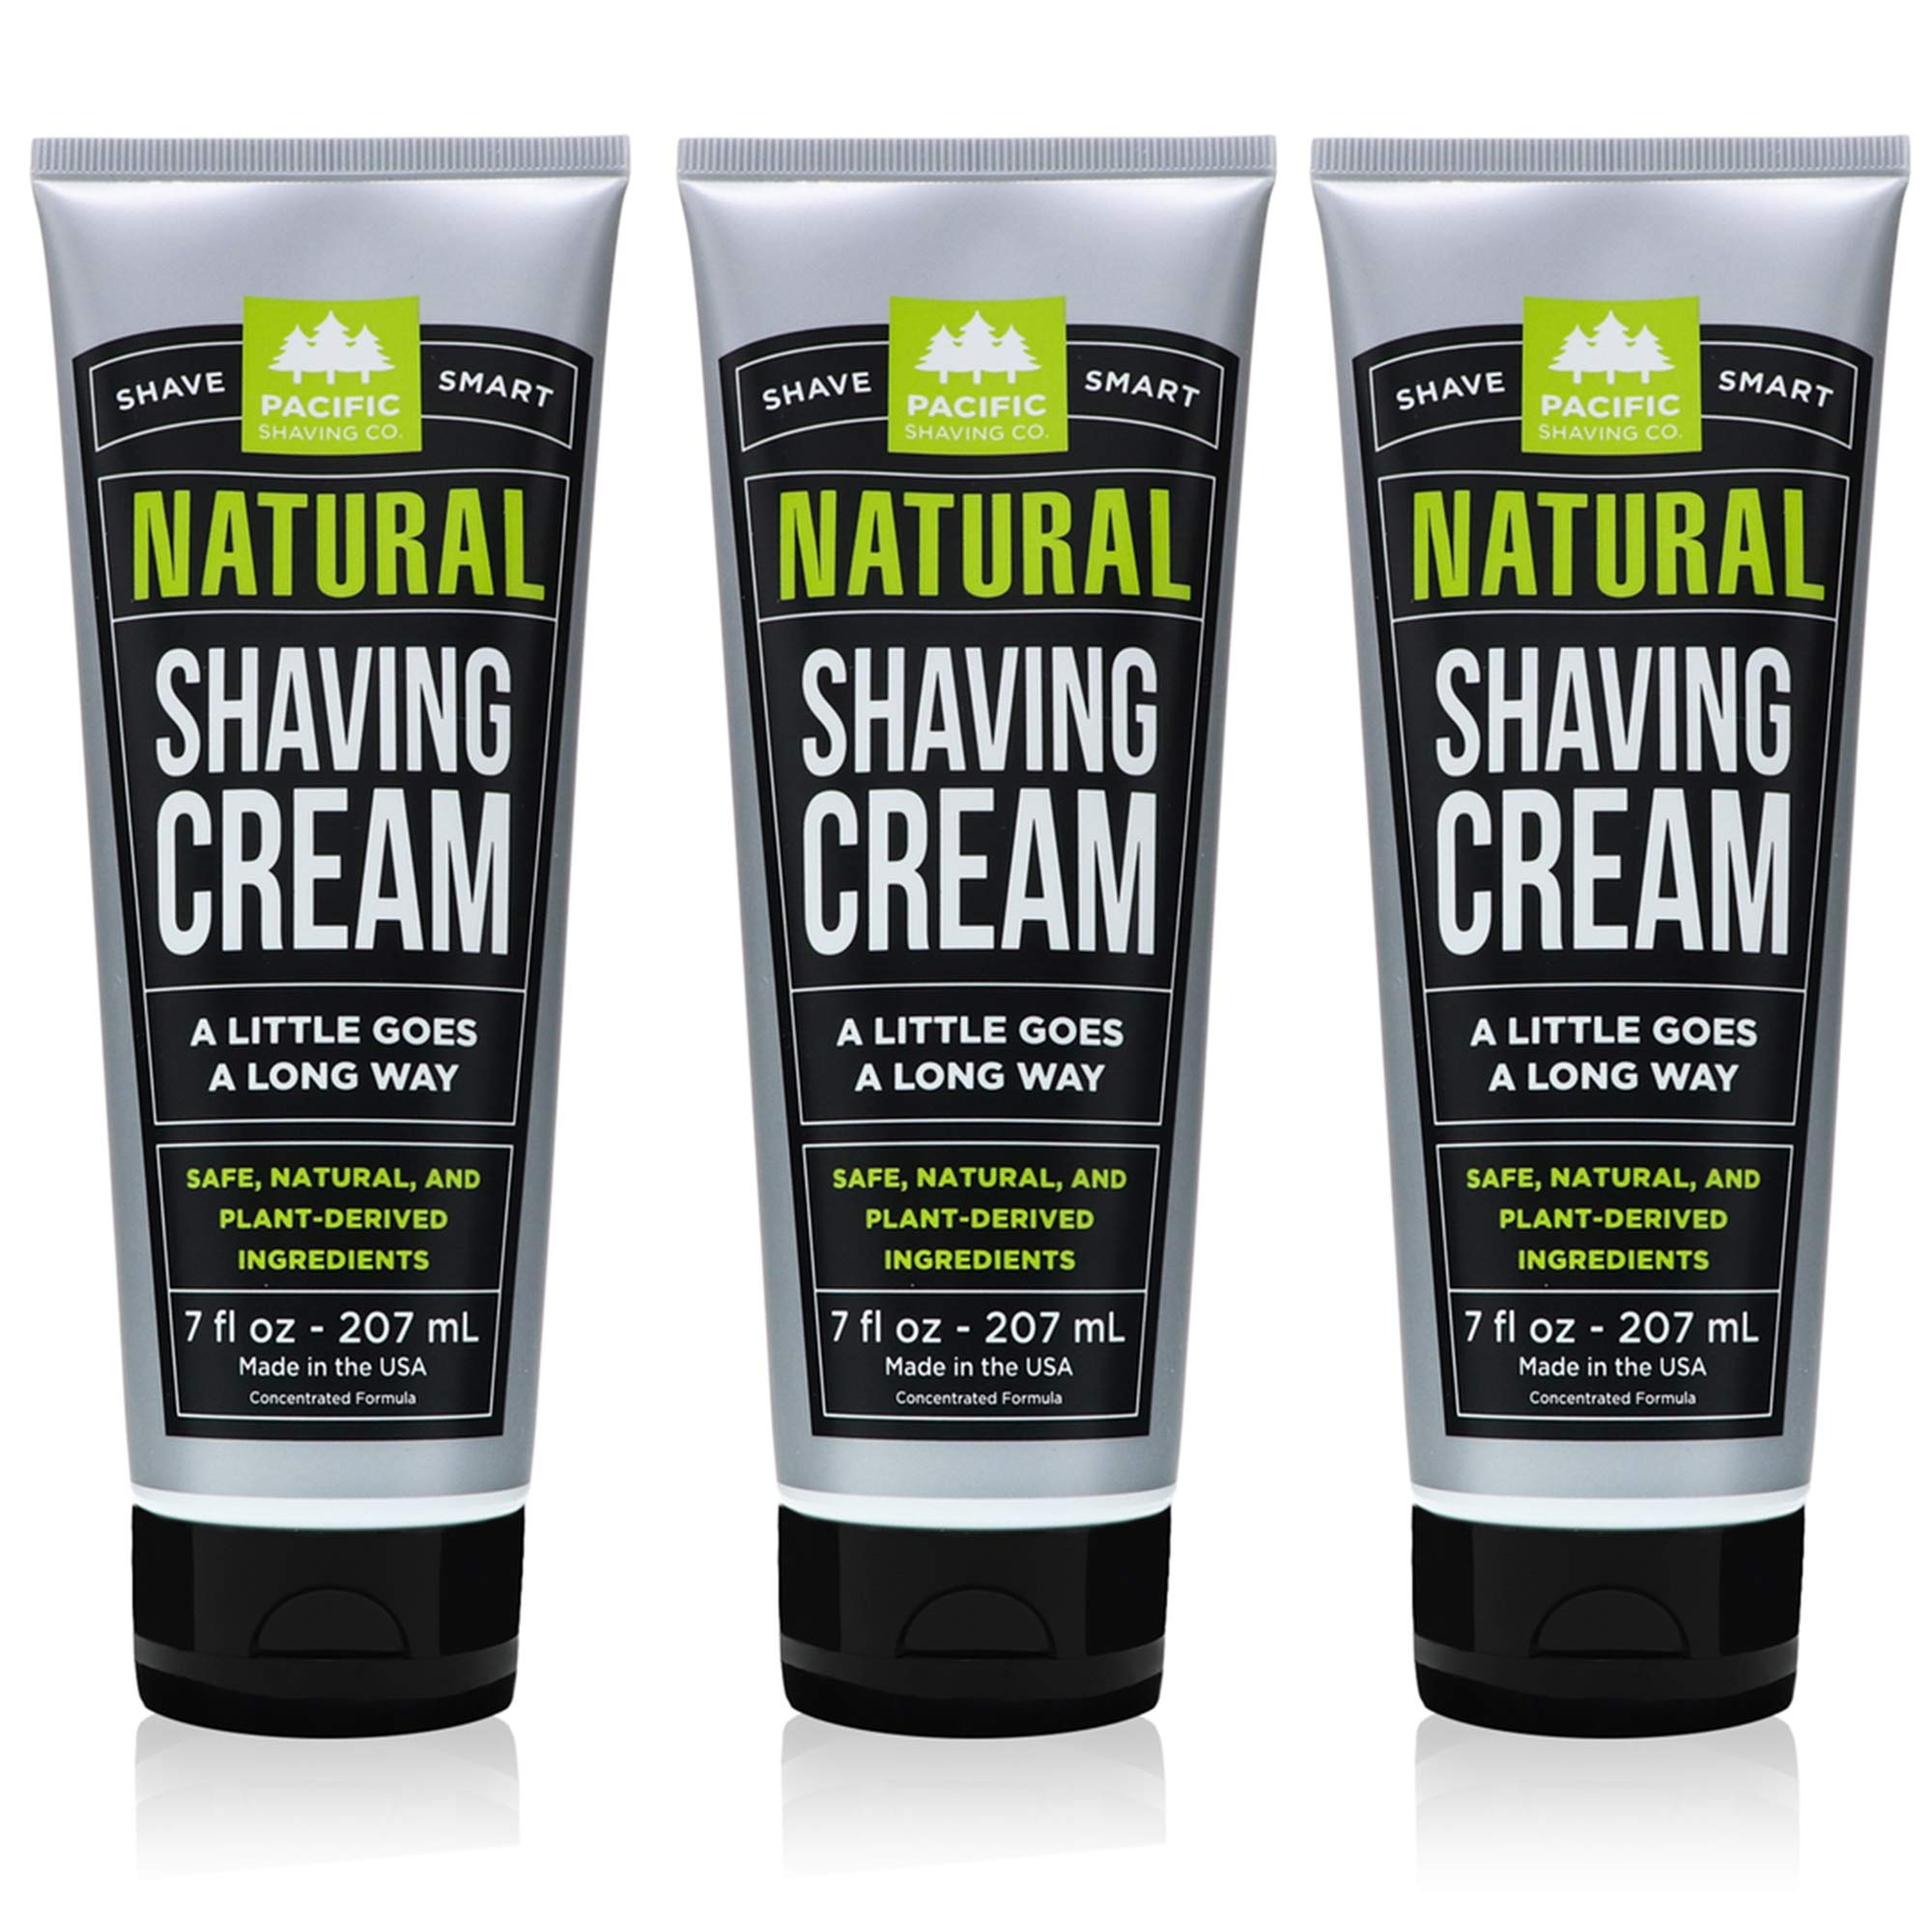 Pacific Shaving Company Natural Shave Cream - with Safe, Natural, and Plant-Derived Ingredients for a Smooth Shave, Healthy, Hydrated, Softer Skin, Less Irritation, Cruelty-Free, 7 oz (Pack of 3) by Pacific Shaving Company